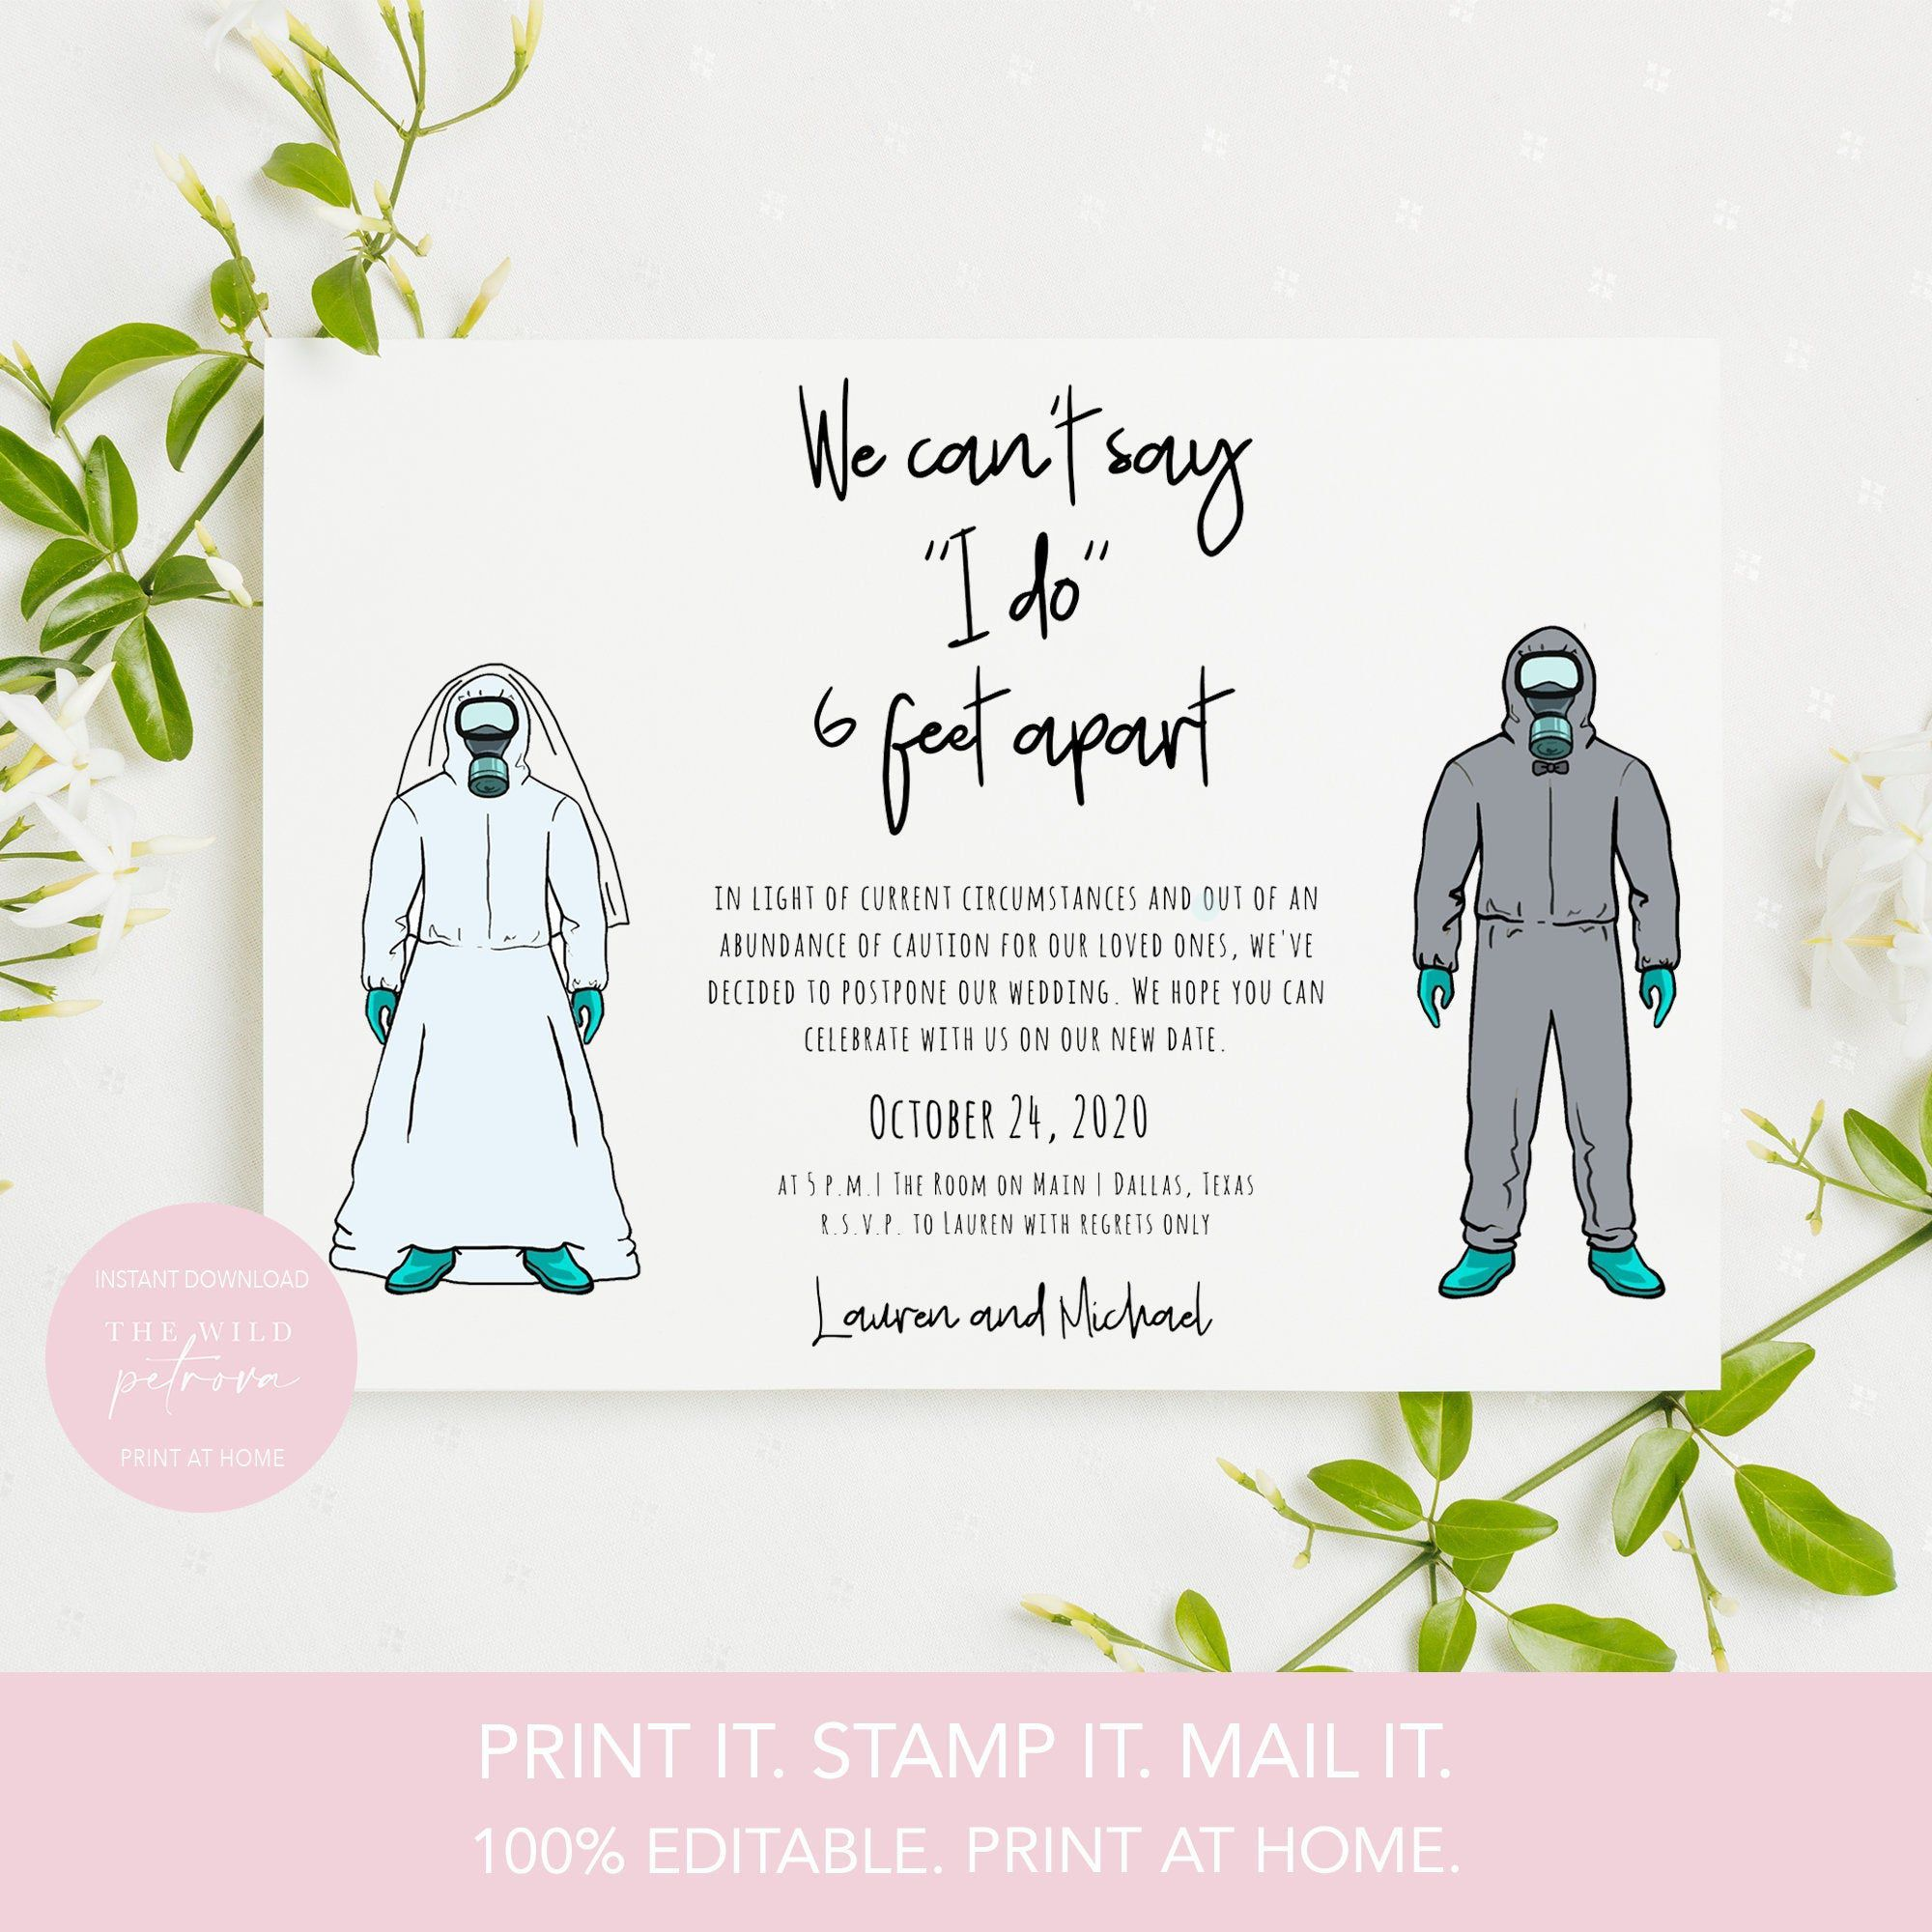 Change The Date Printable Template Postponed Wedding Etsy Funny Wedding Cards Wedding Postcard Wedding Announcements